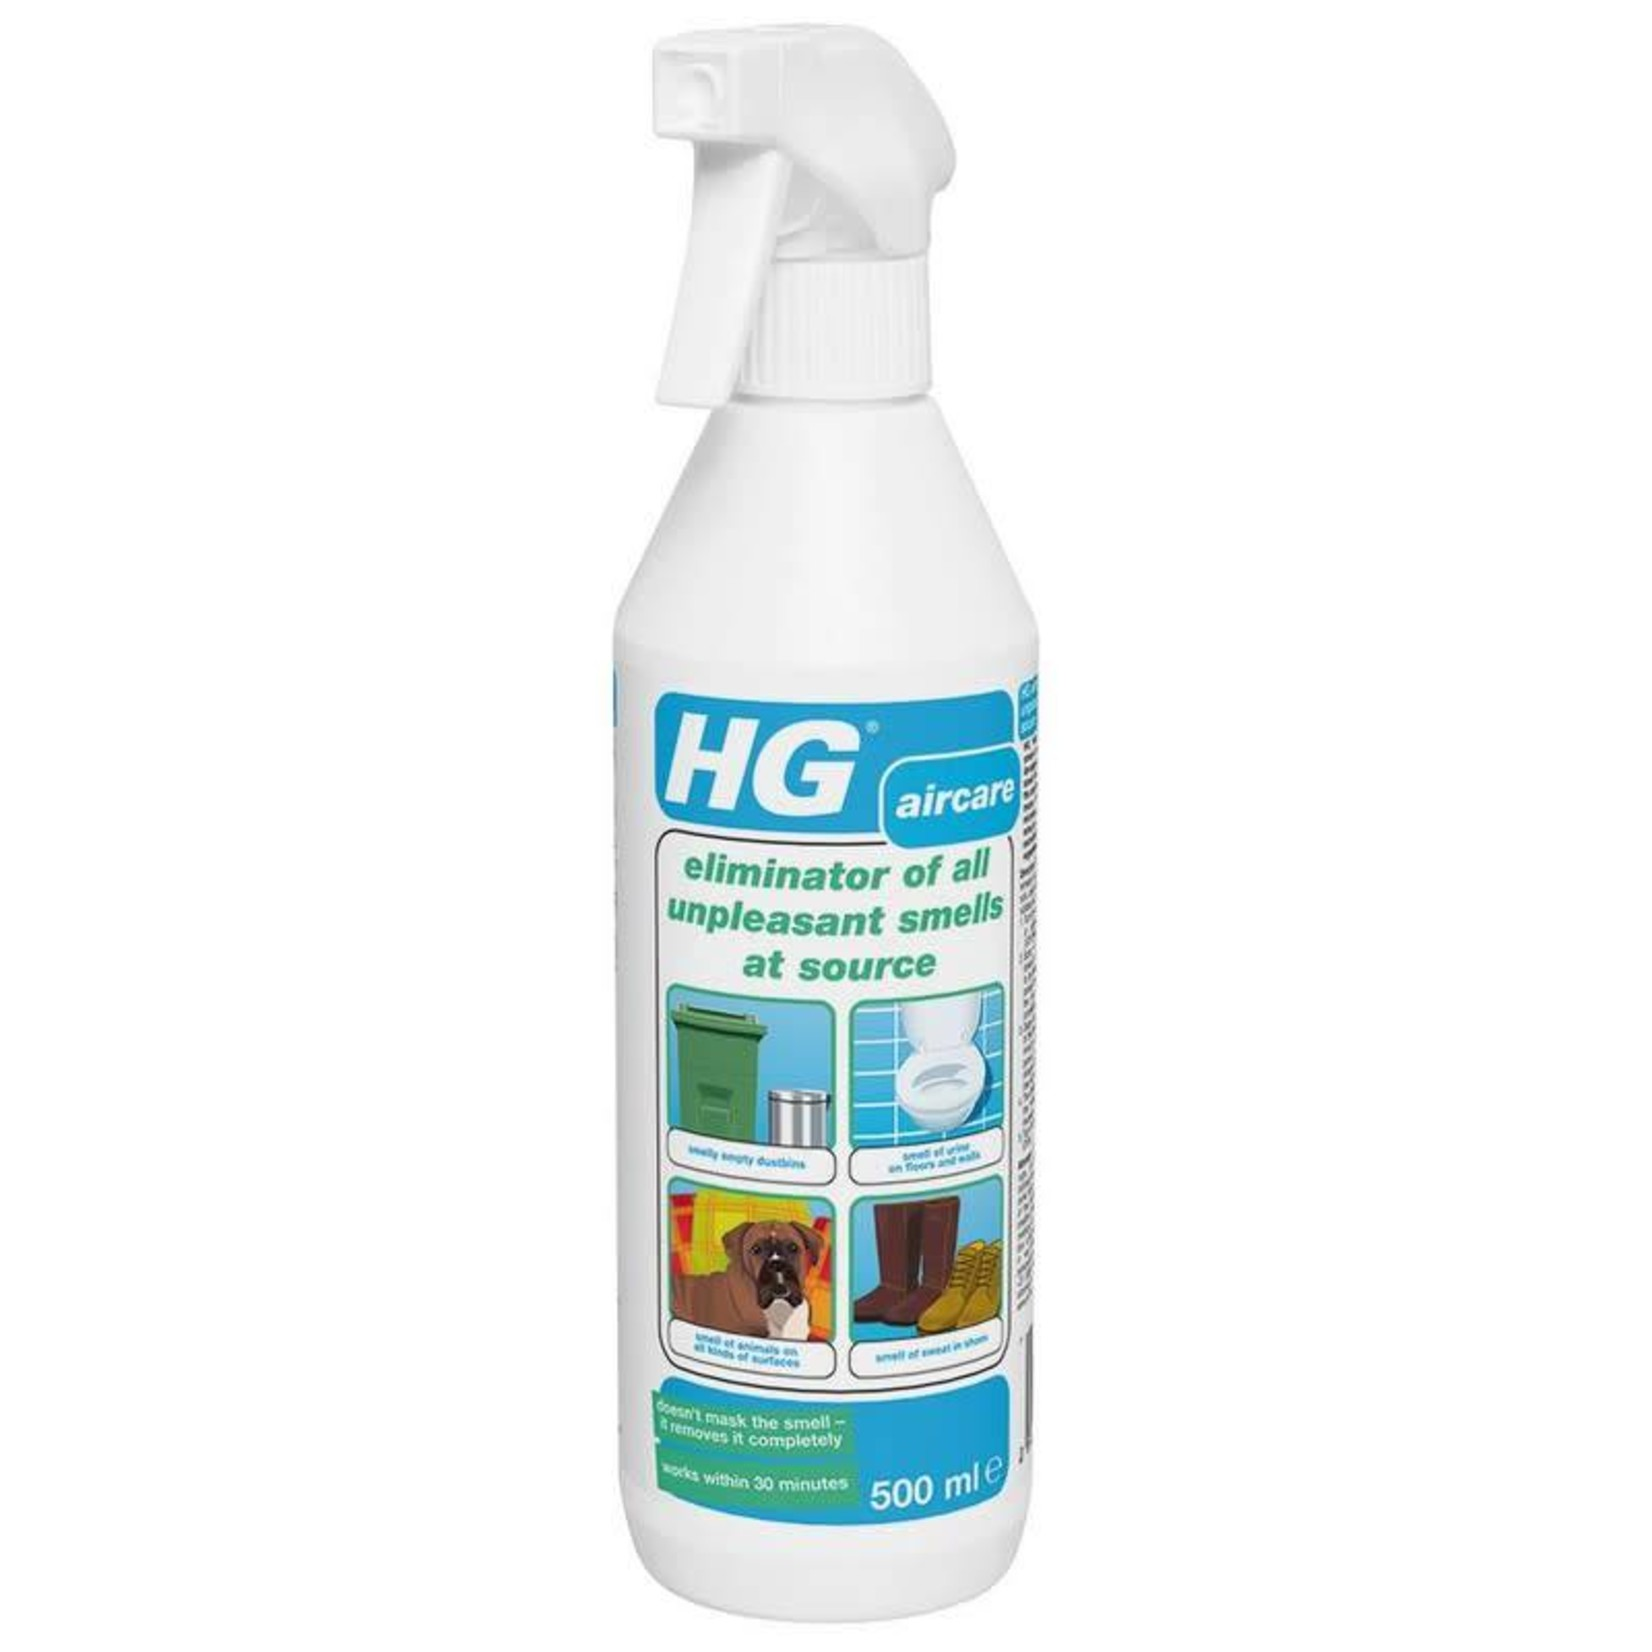 HG HG ELIMINATOR OF ALL UNPLEASANT SMELLS AT SOURCE AIRCARE